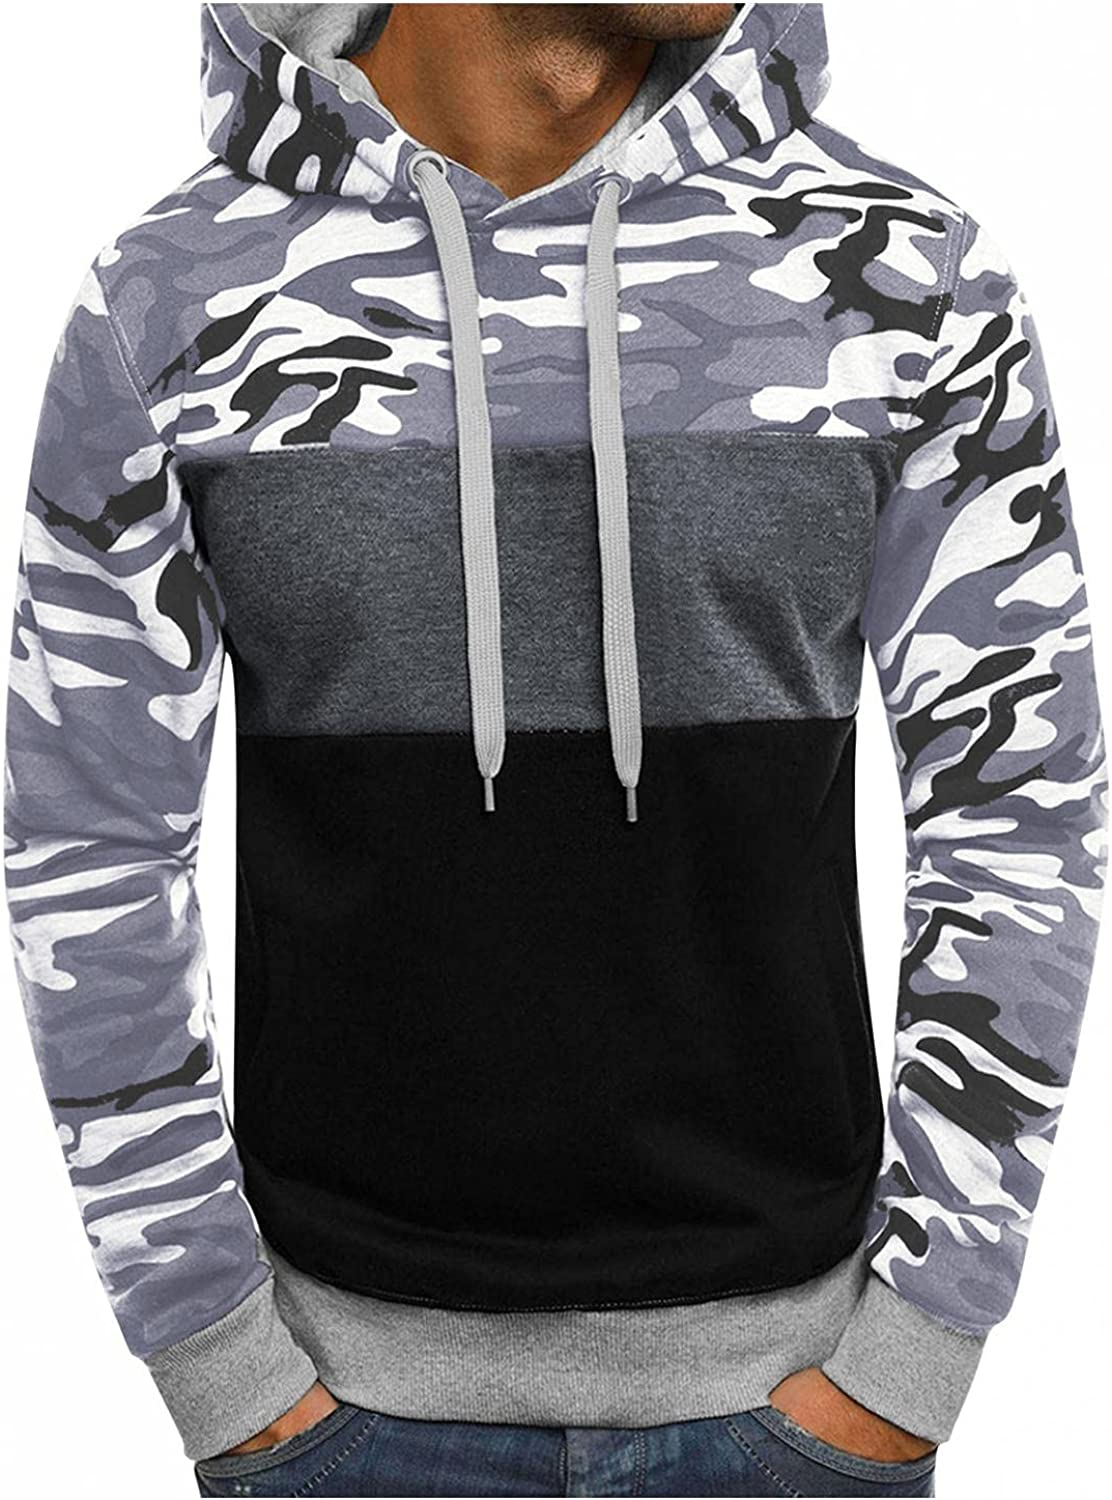 Aayomet Men's Pullover Hoodies Camouflag Color Block Long Sleeve Sweatshirts Casual Workout Sport Tops Sweaters Blouses